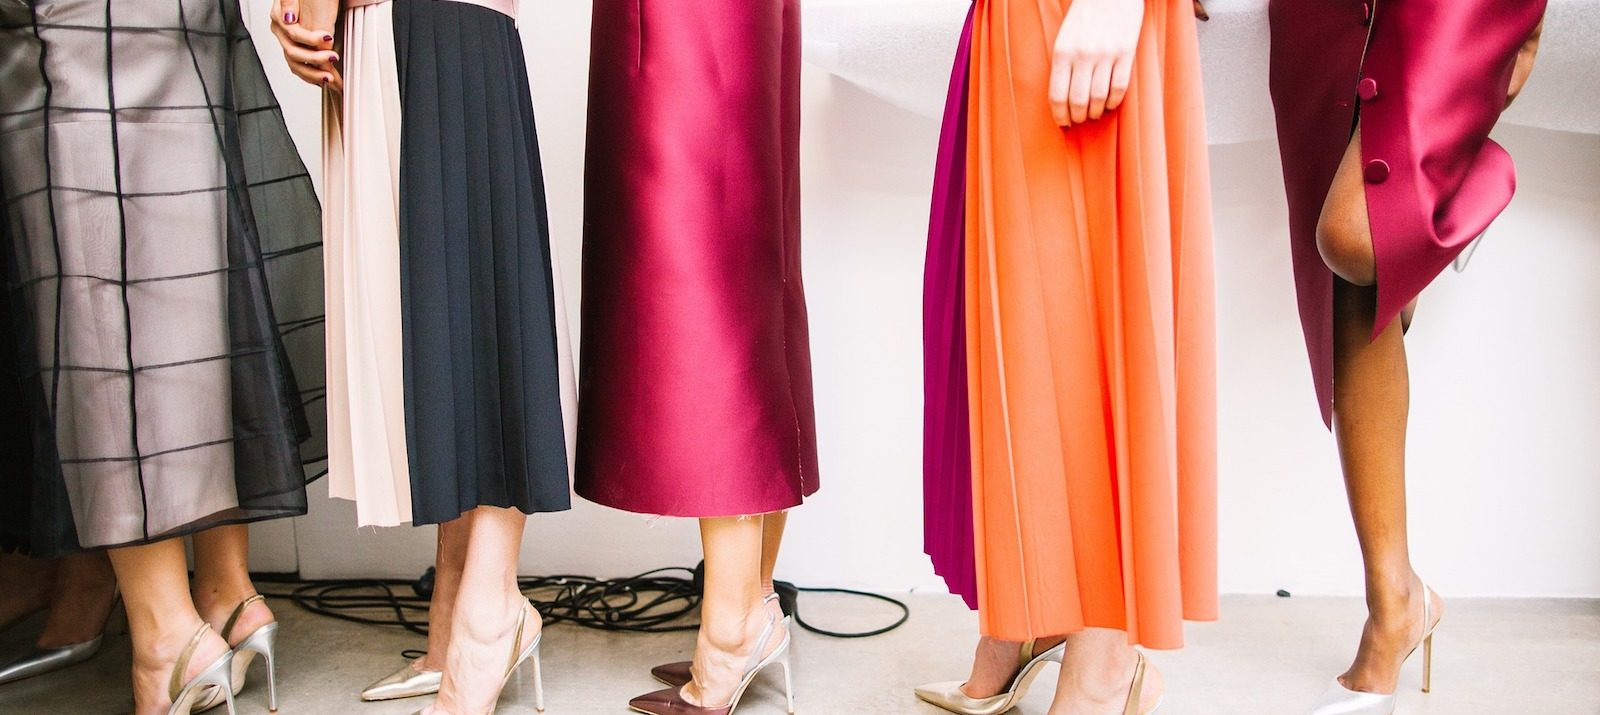 c0b7dbc6f4 The Right Way To Store Skirts And Dresses  14 Easy Steps  With Photos